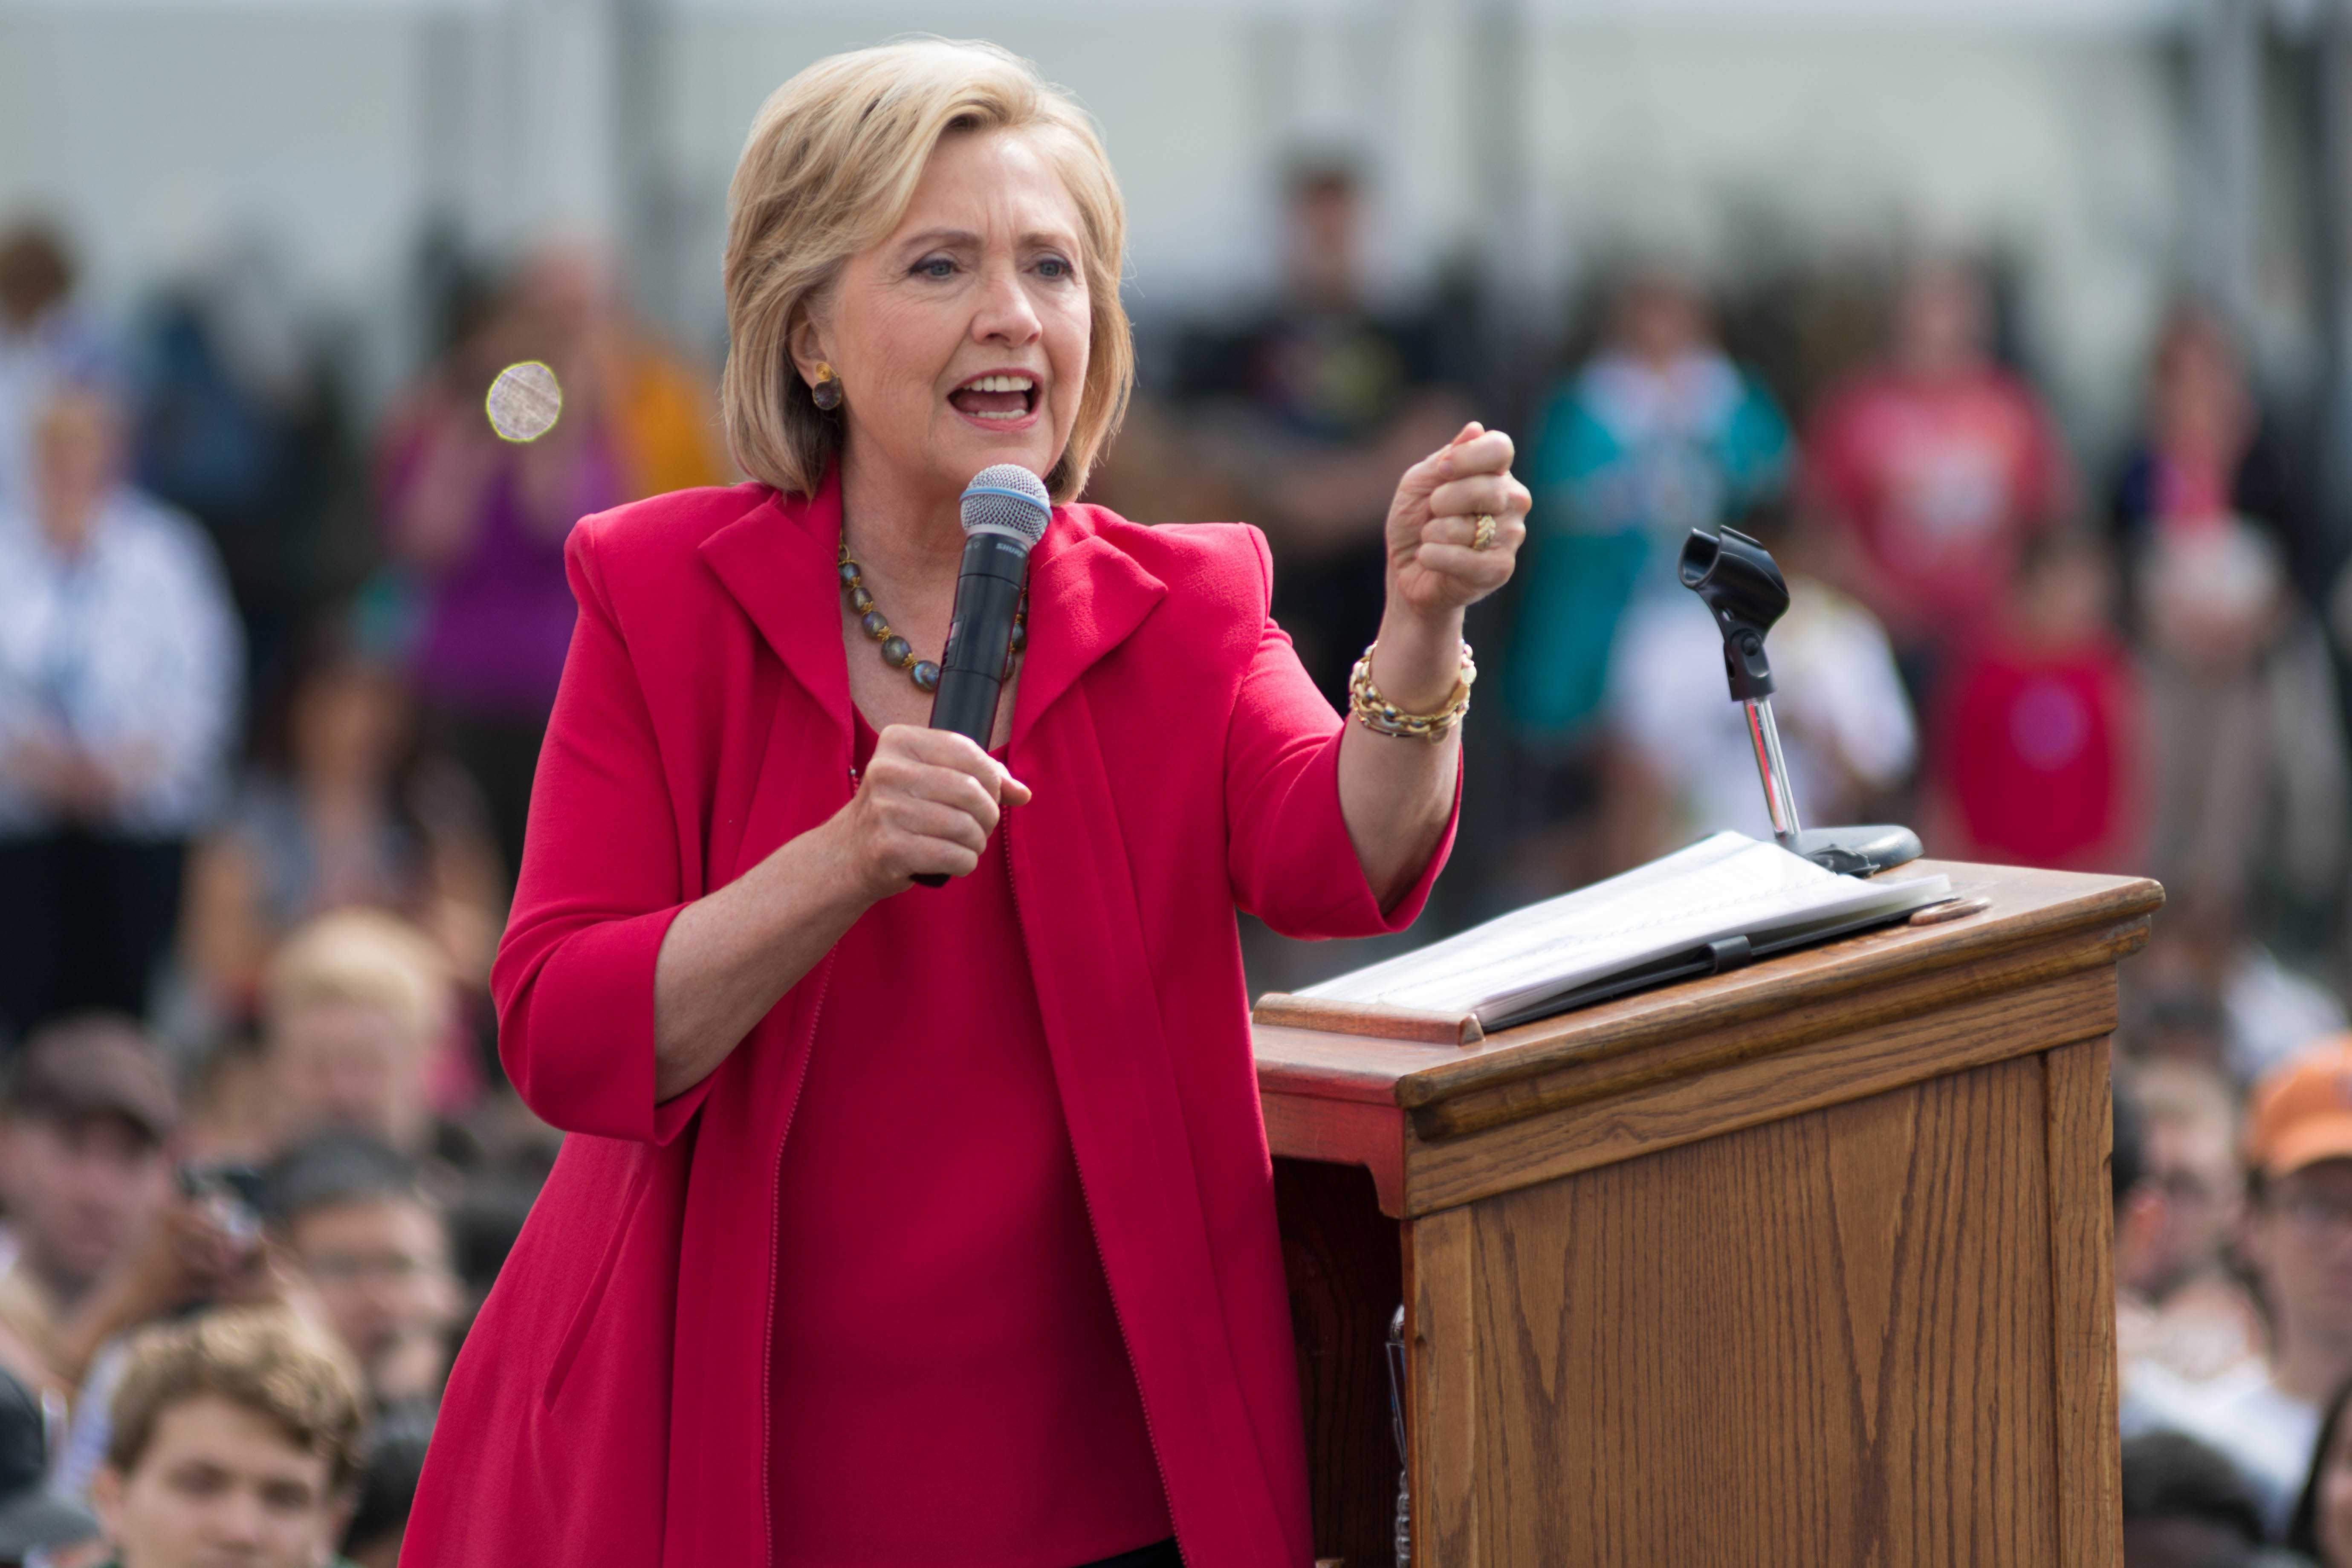 Democratic presidential candidate Hillary Clinton spoke at CWRU on Aug. 27.